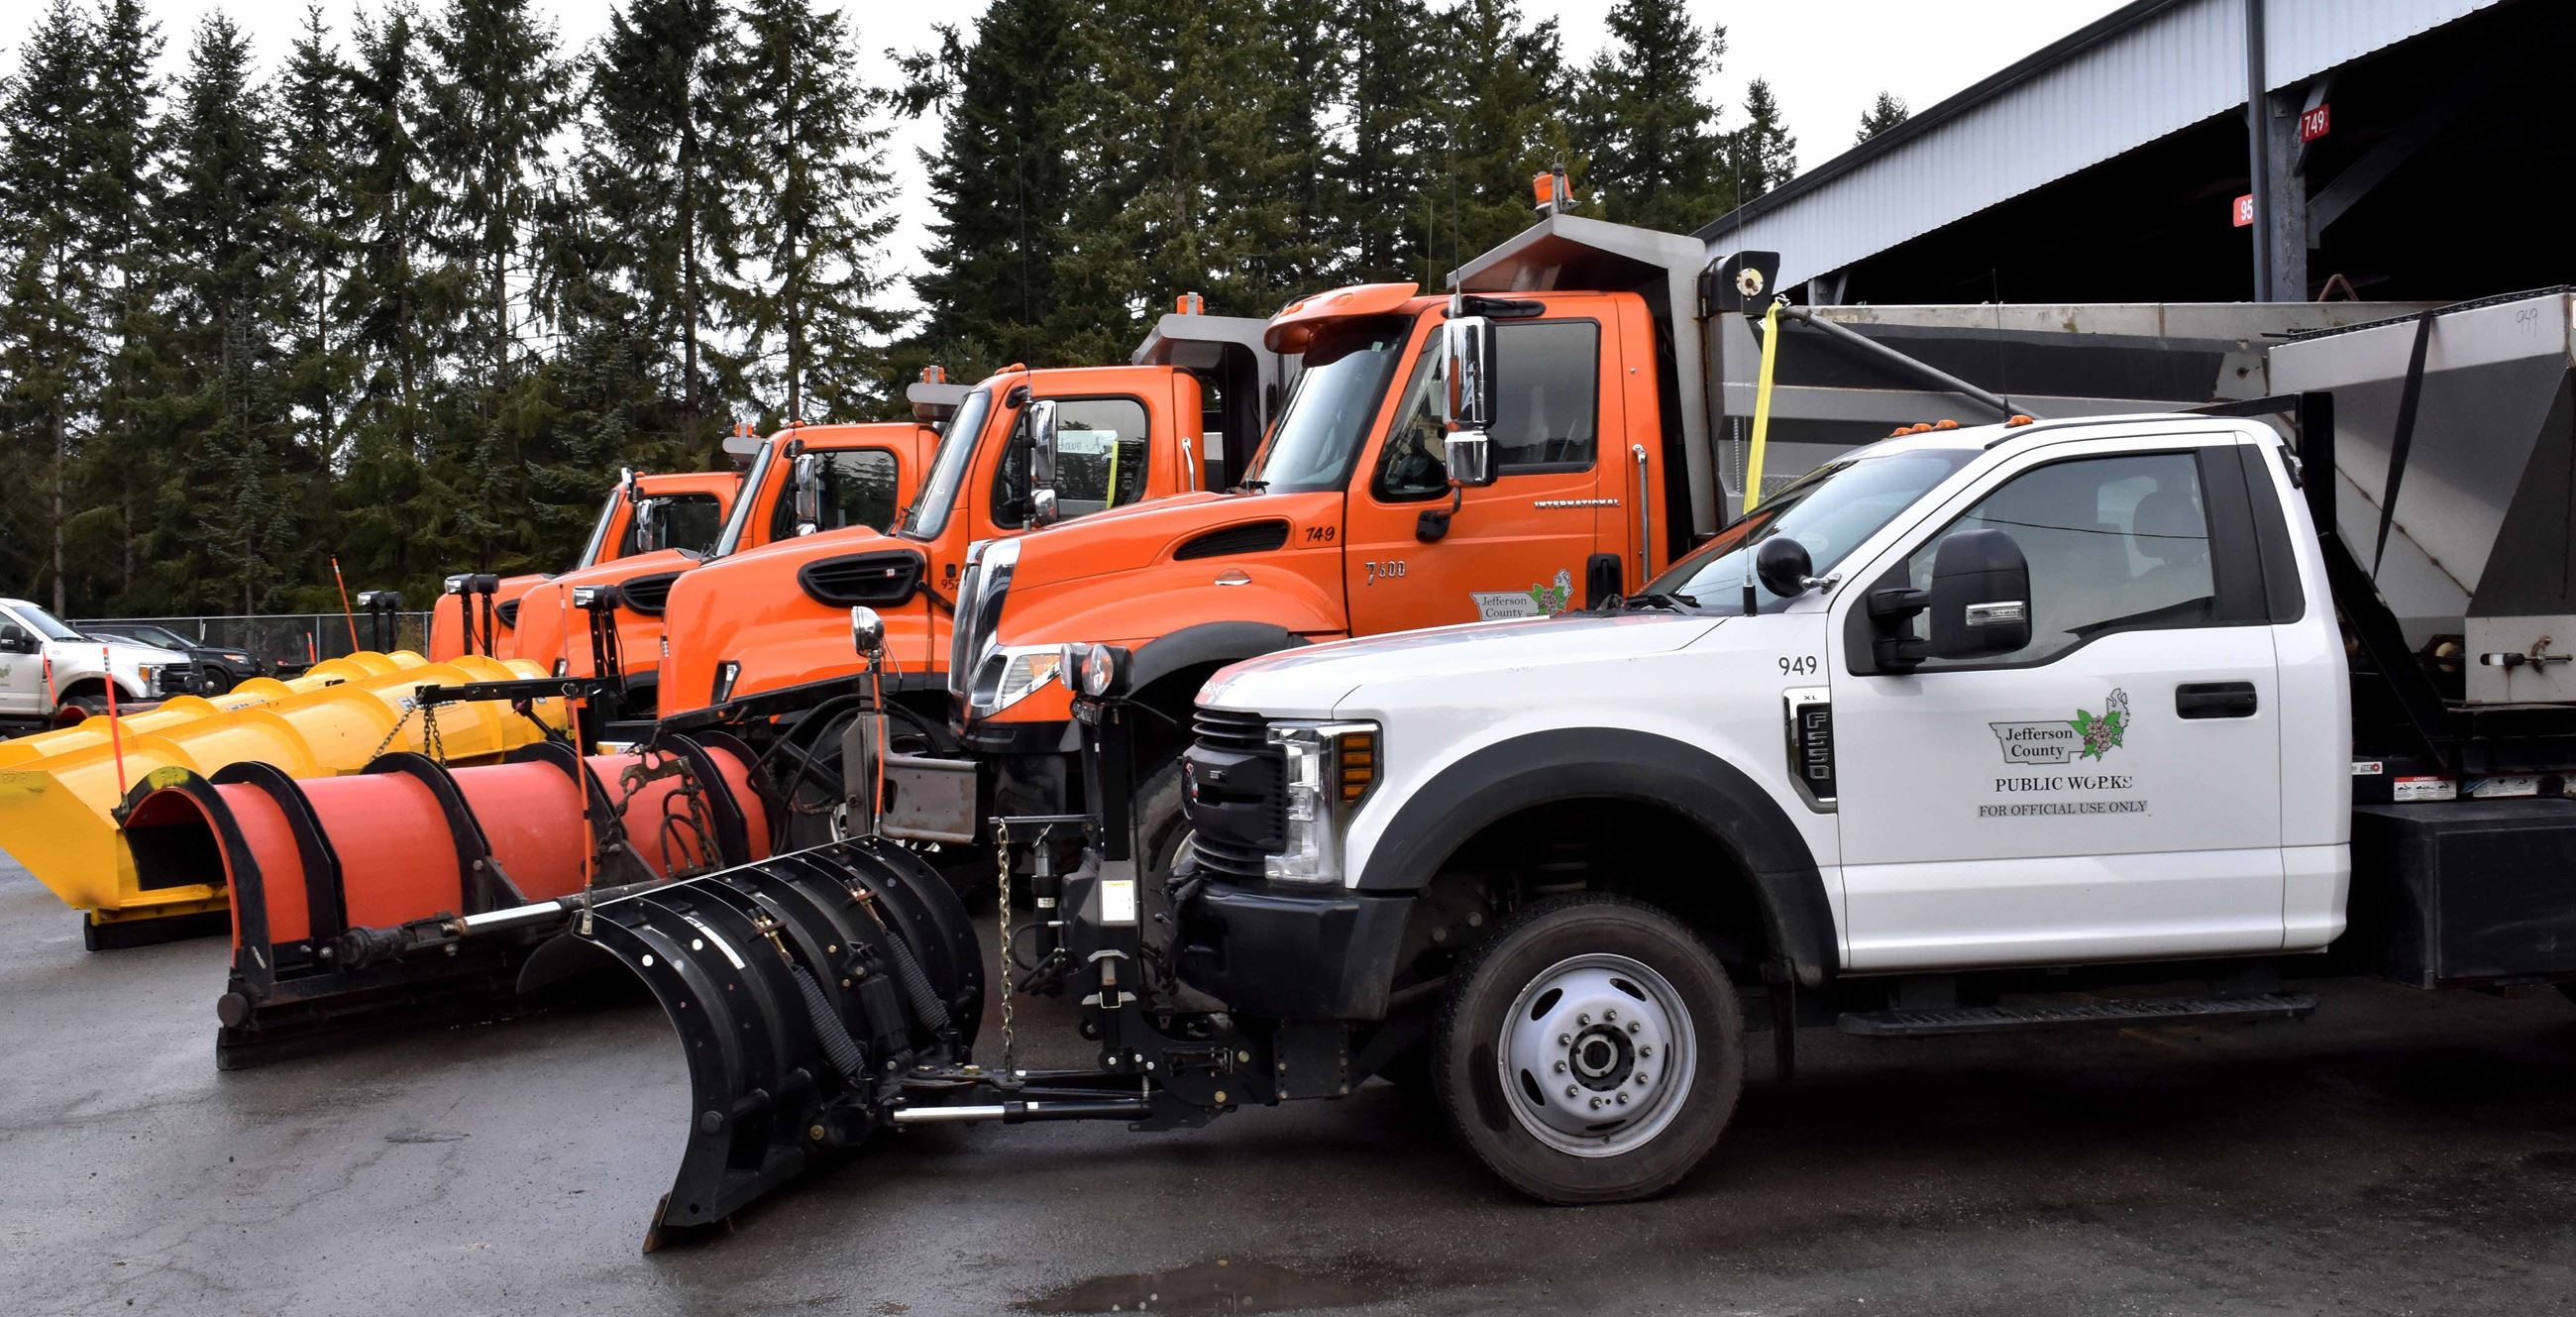 Hadlock plow trucks prepared for snow